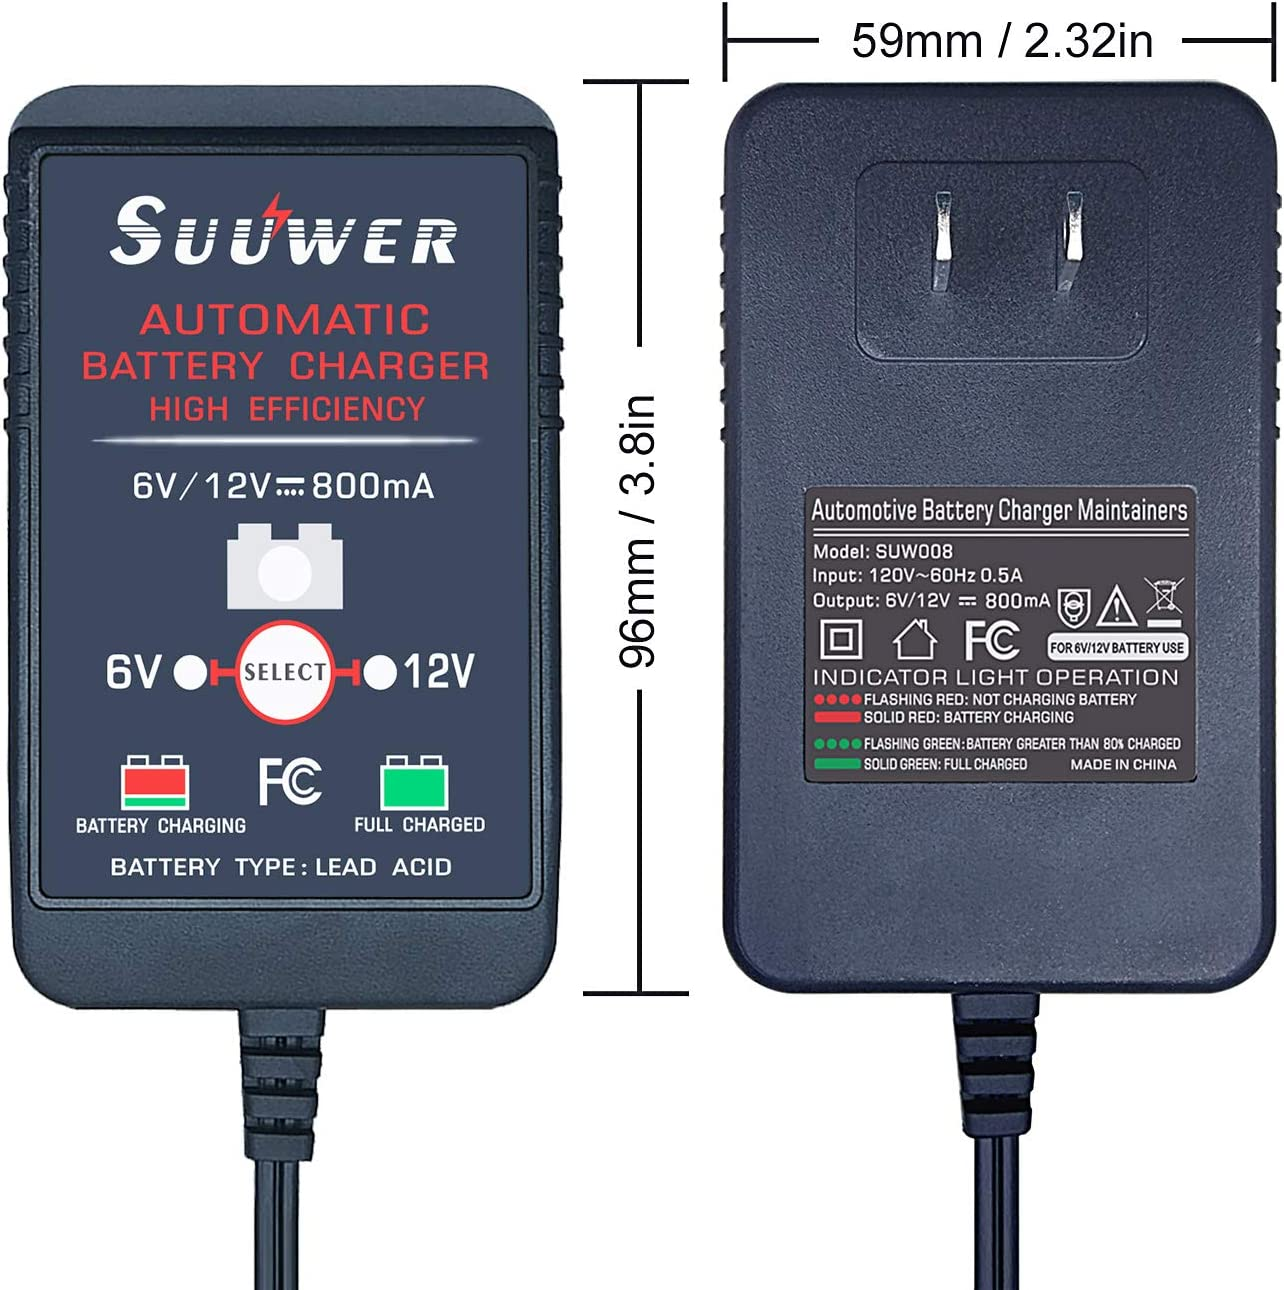 iPad iPod GPS Suuwer Motorcycle USB Charger 5V 4.8A SAE to Dual USB Adapter for Charging Your iPhone Camera or any Smartphone